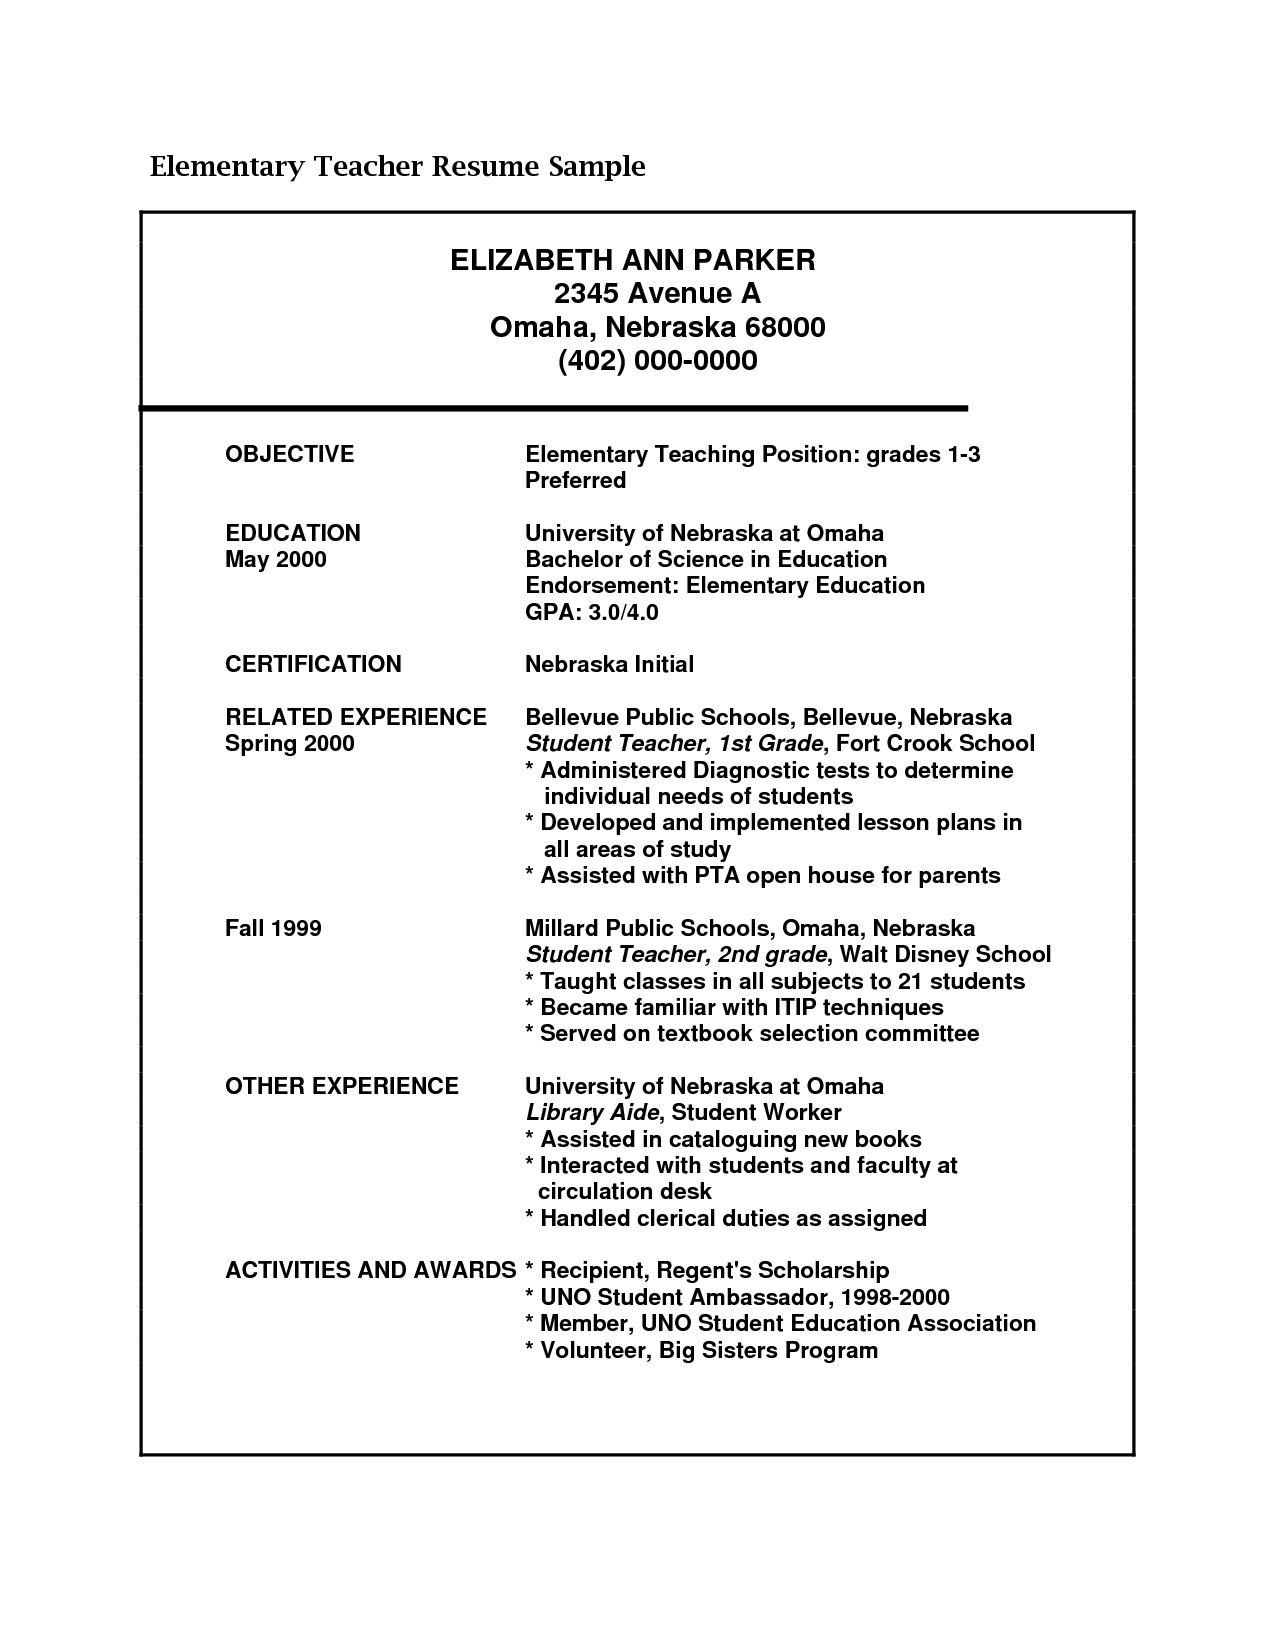 resume Sample Resume Format For Teaching Profession cv for teachers httpwww resumes com au au